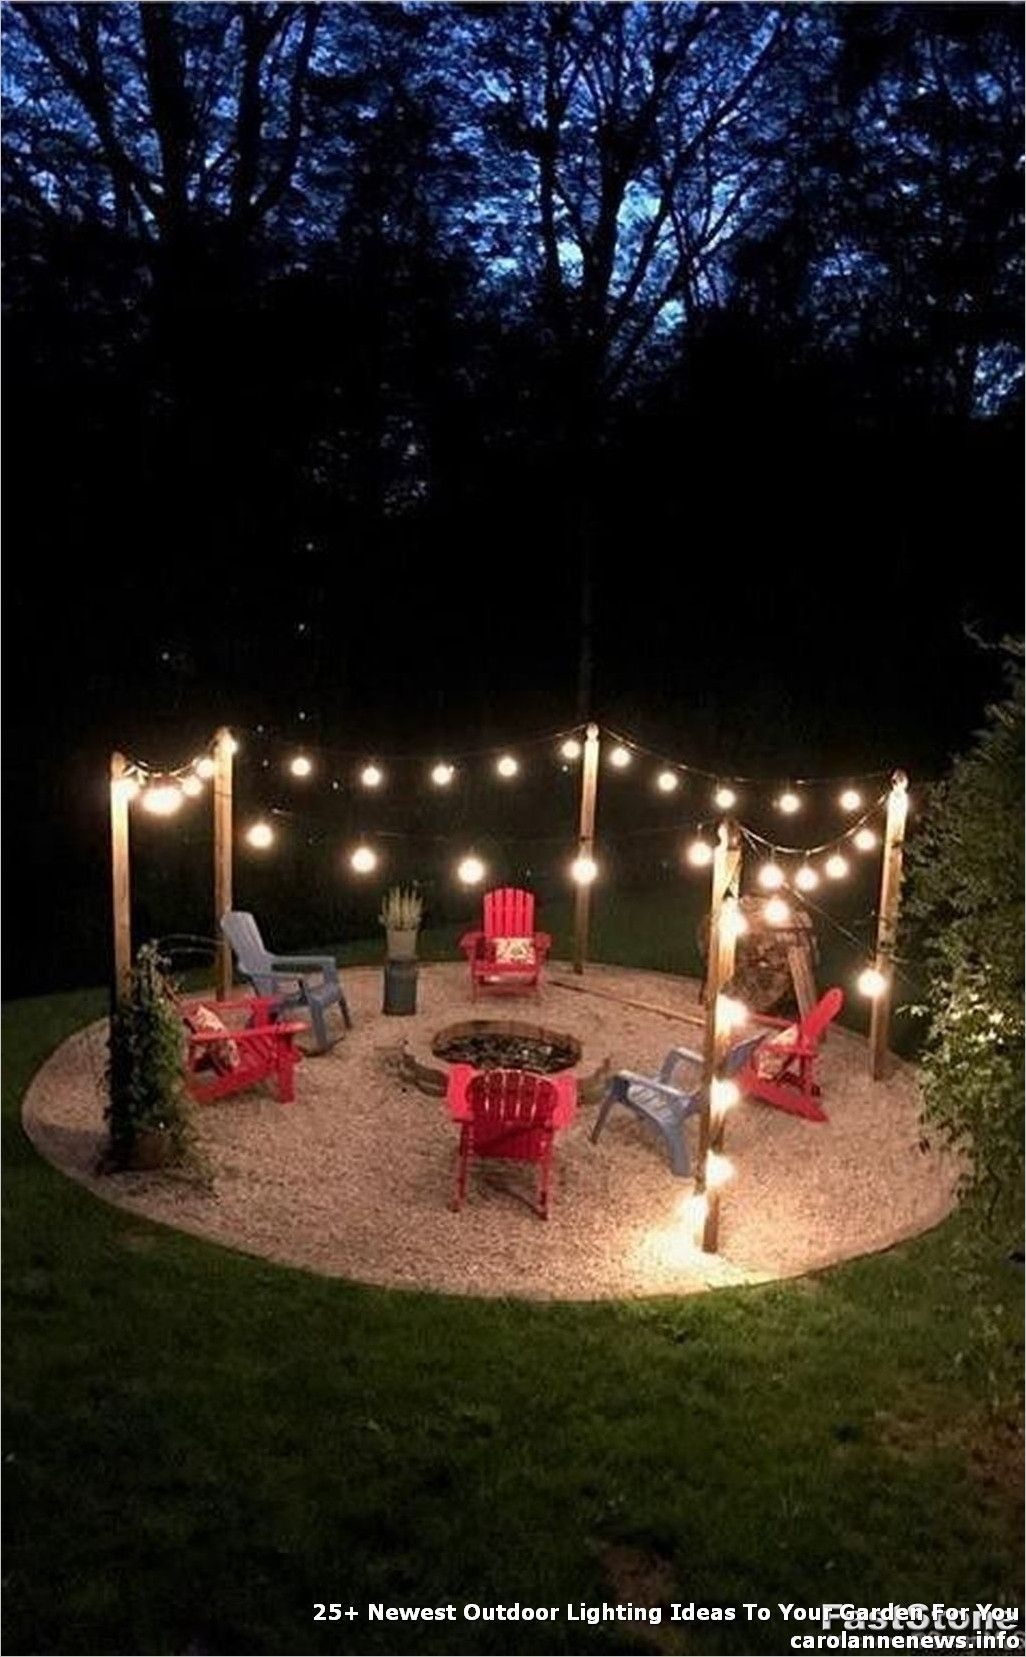 25 Newest Outdoor Lighting Ideas To Your Garden For You